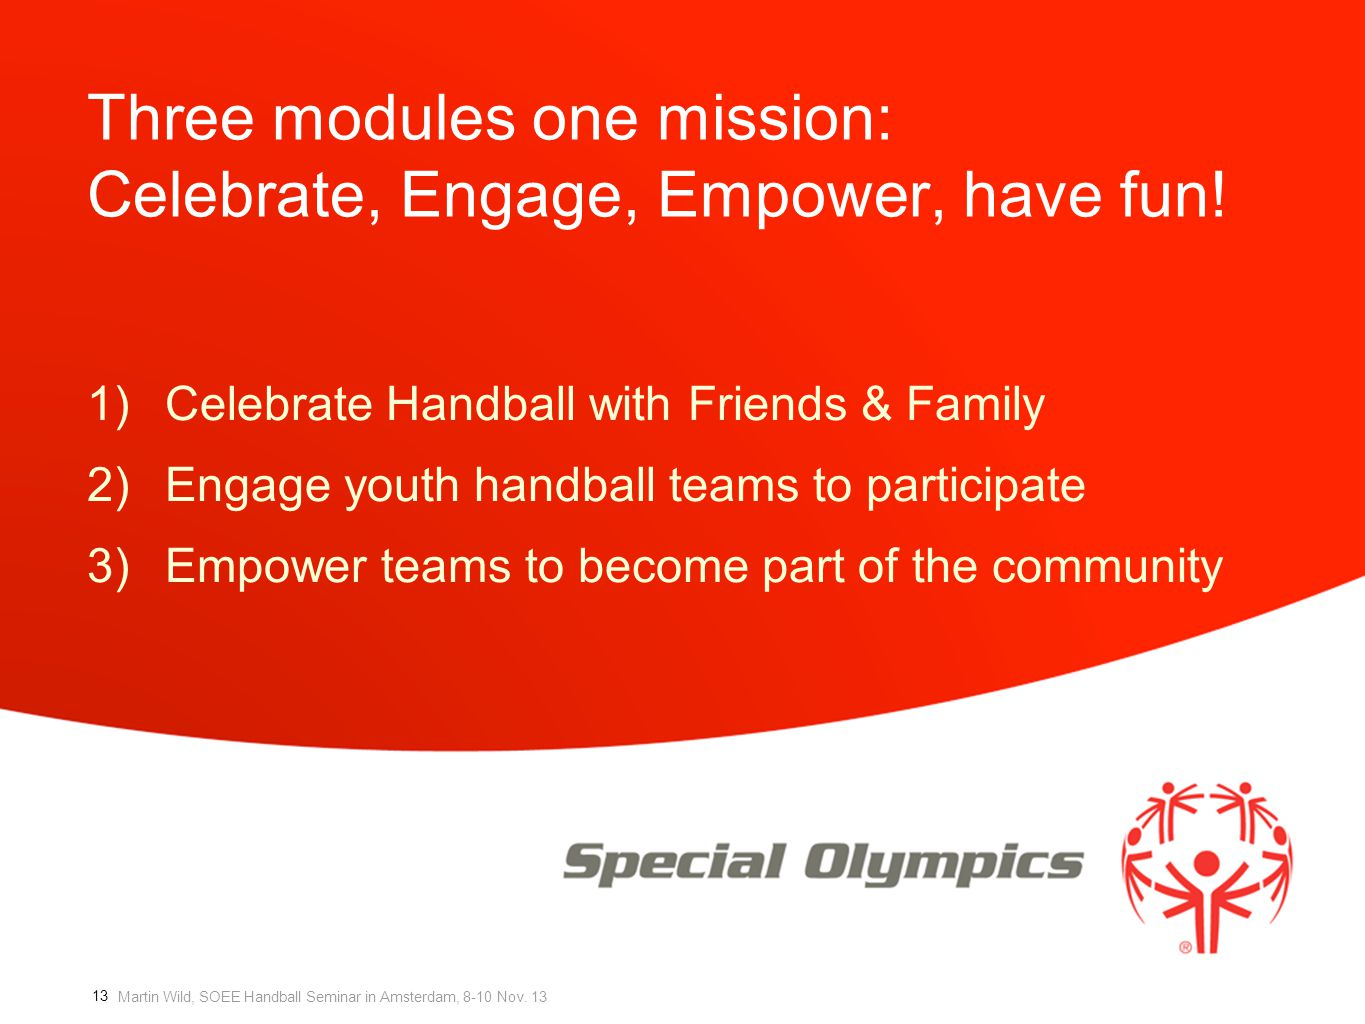 Three modules one mission: Celebrate, Engage, Empower, have fun!